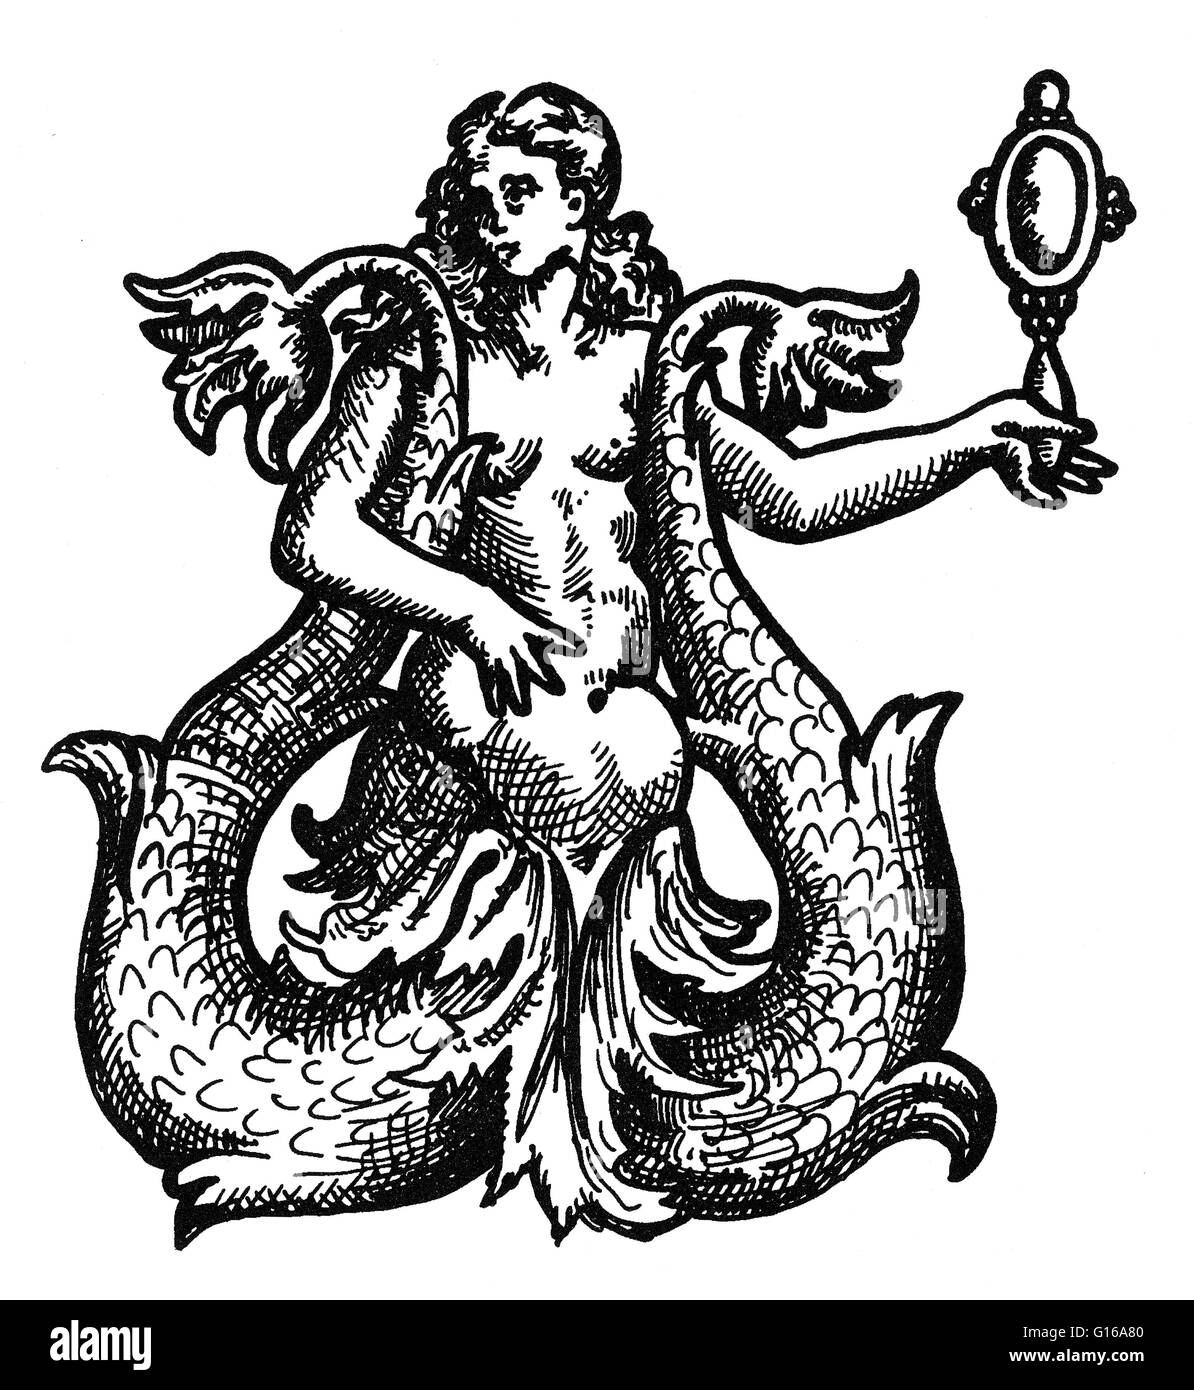 A mermaid is a legendary aquatic creature with the upper body of a female human and the tail of a fish. Mermaids - Stock Image